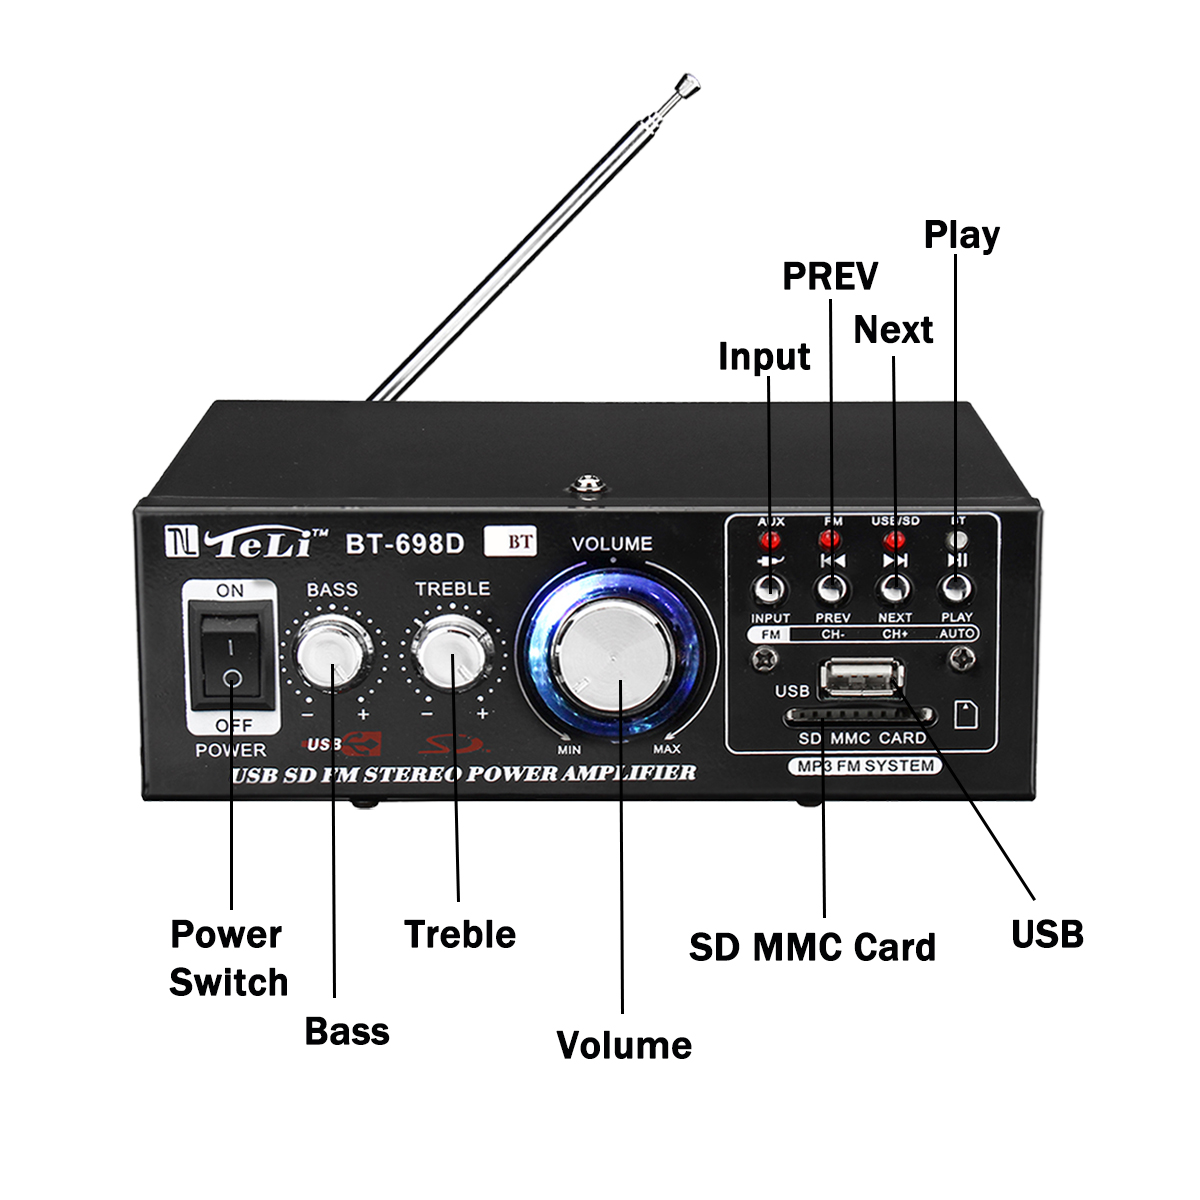 USB SD HIFI Power Amplifier HiFi Digital Audio Stereo Amplifier bluetooth FM Radio Equipment